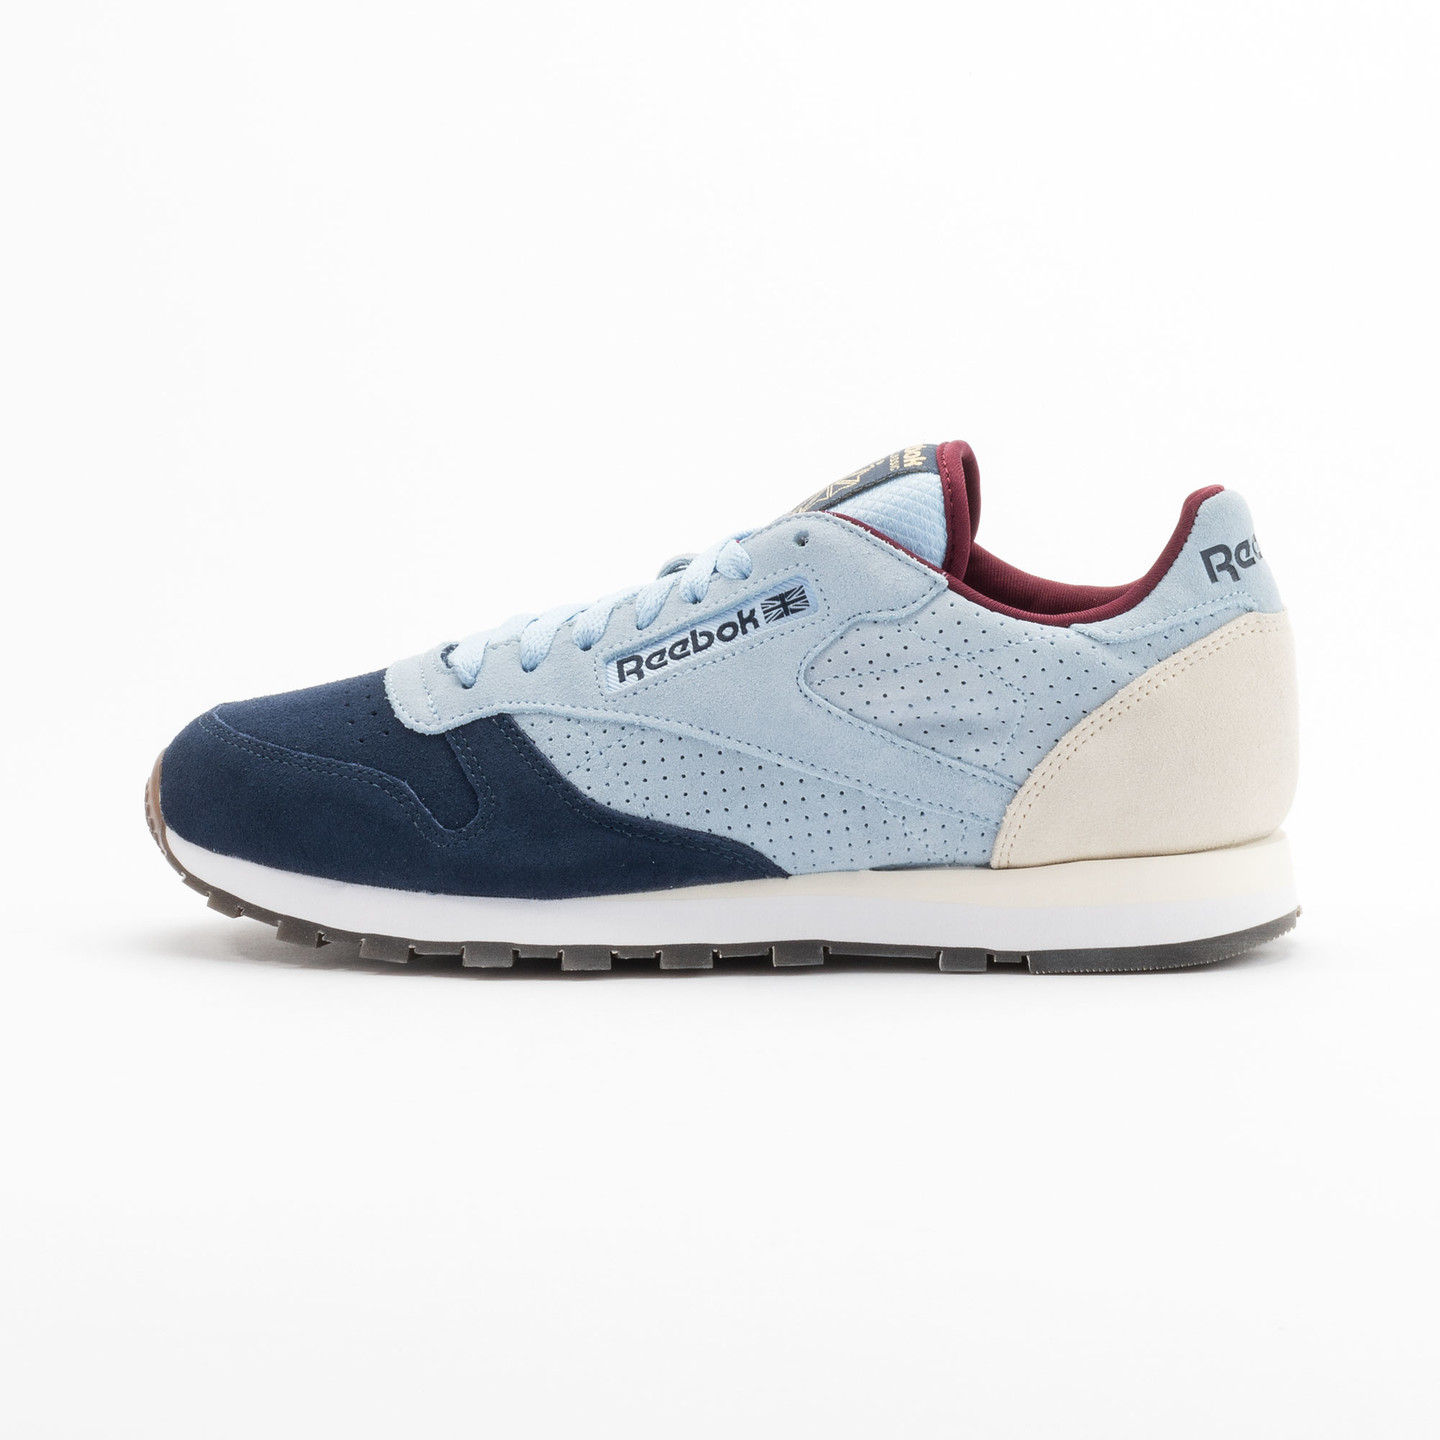 Reebok Classic Leather Int Navy / Light Blue / Sand V66829-41